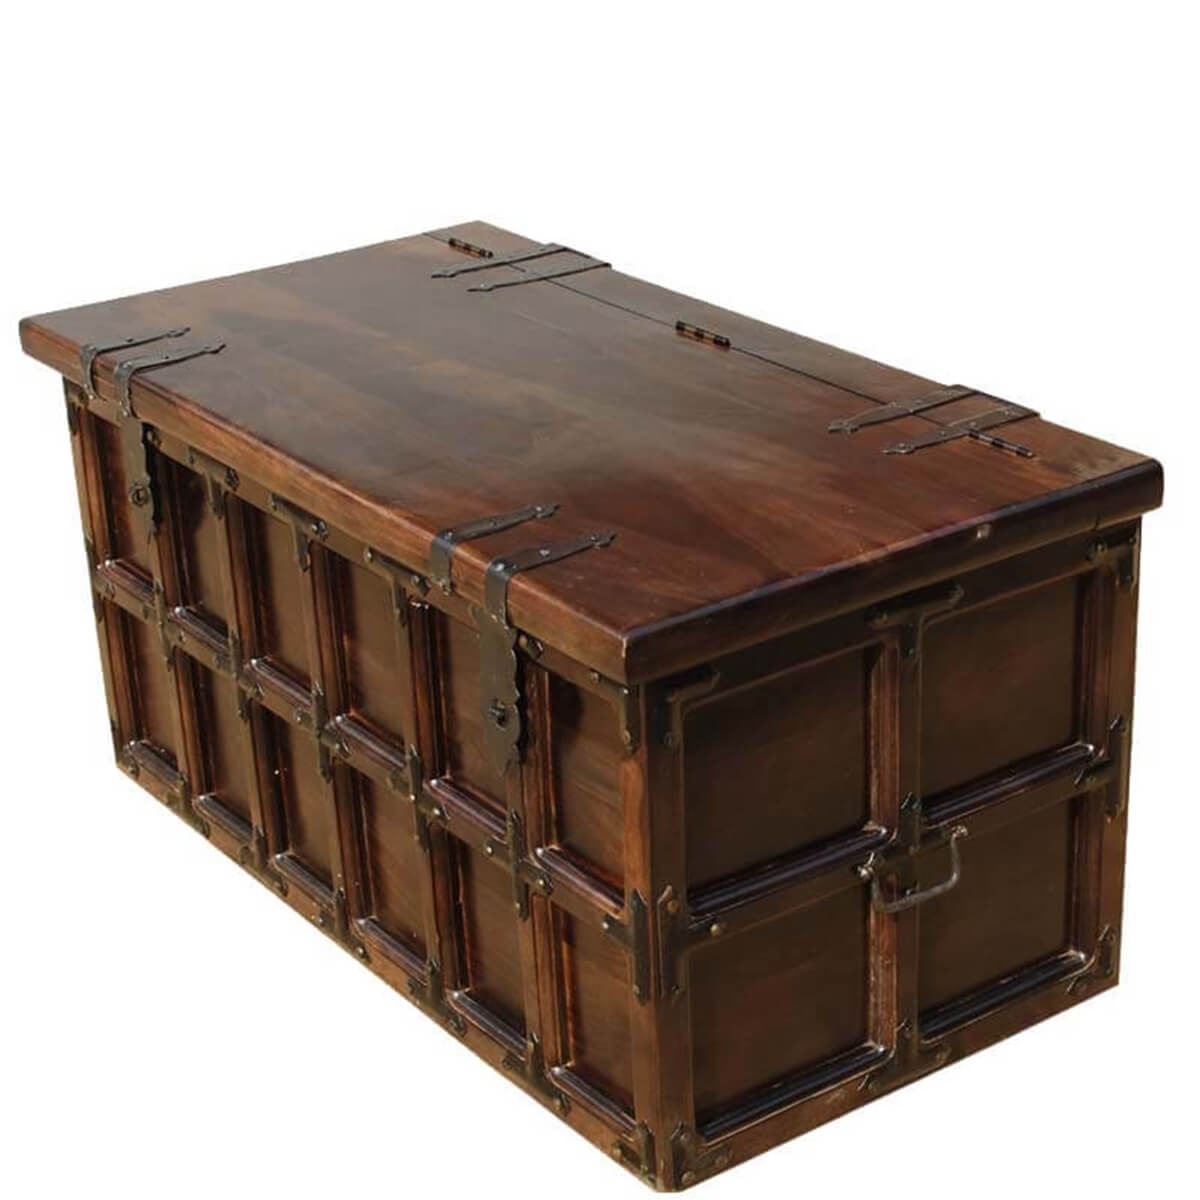 Superieur Kokanee Beaufort Primitive Solid Wood U0026 Iron Coffee Table Trunk